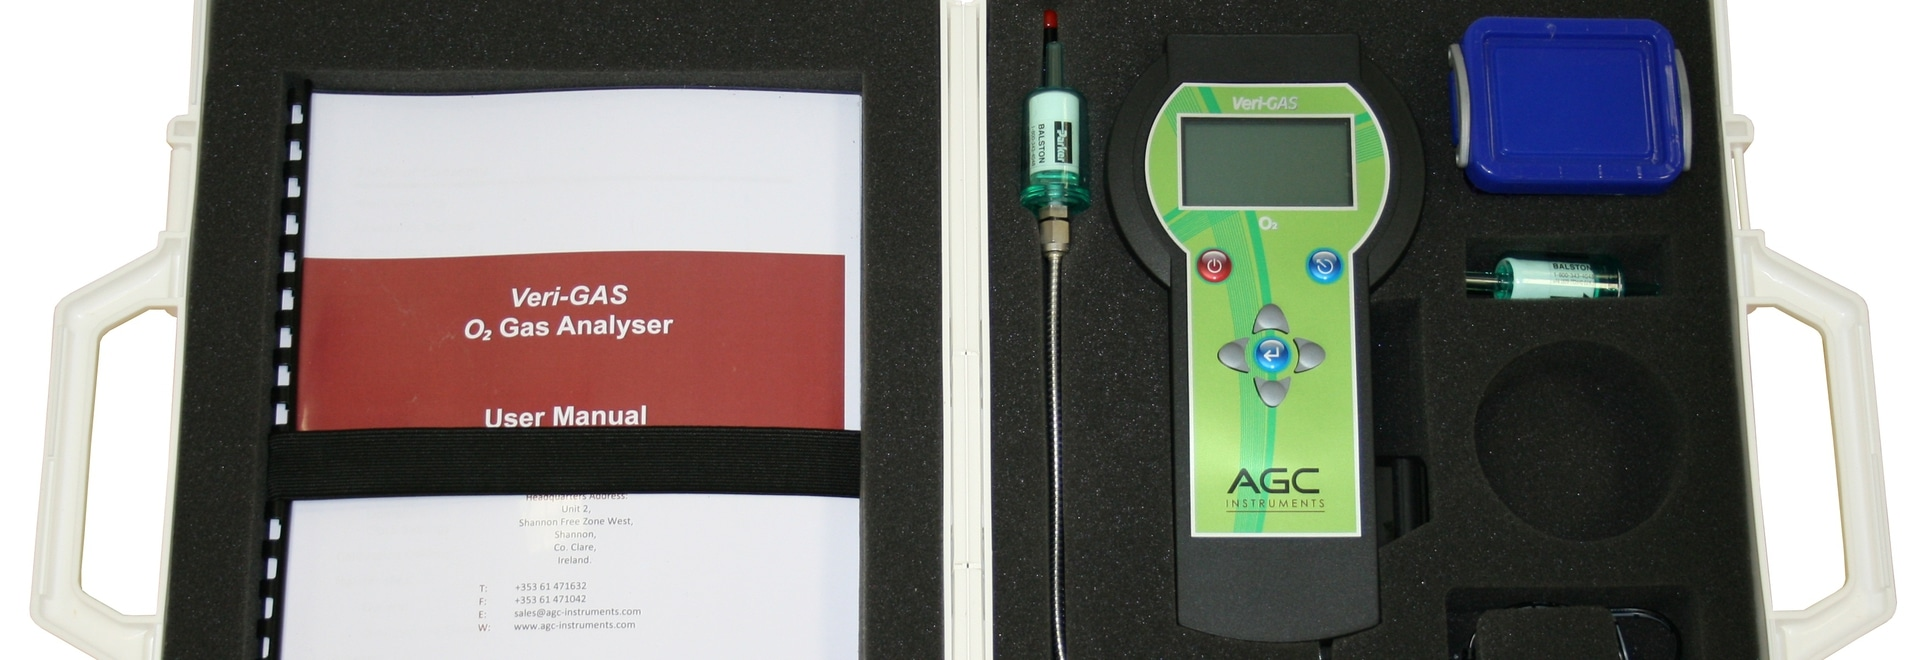 Introducing the new brochure and smarter case for the Veri-GAS analyser range